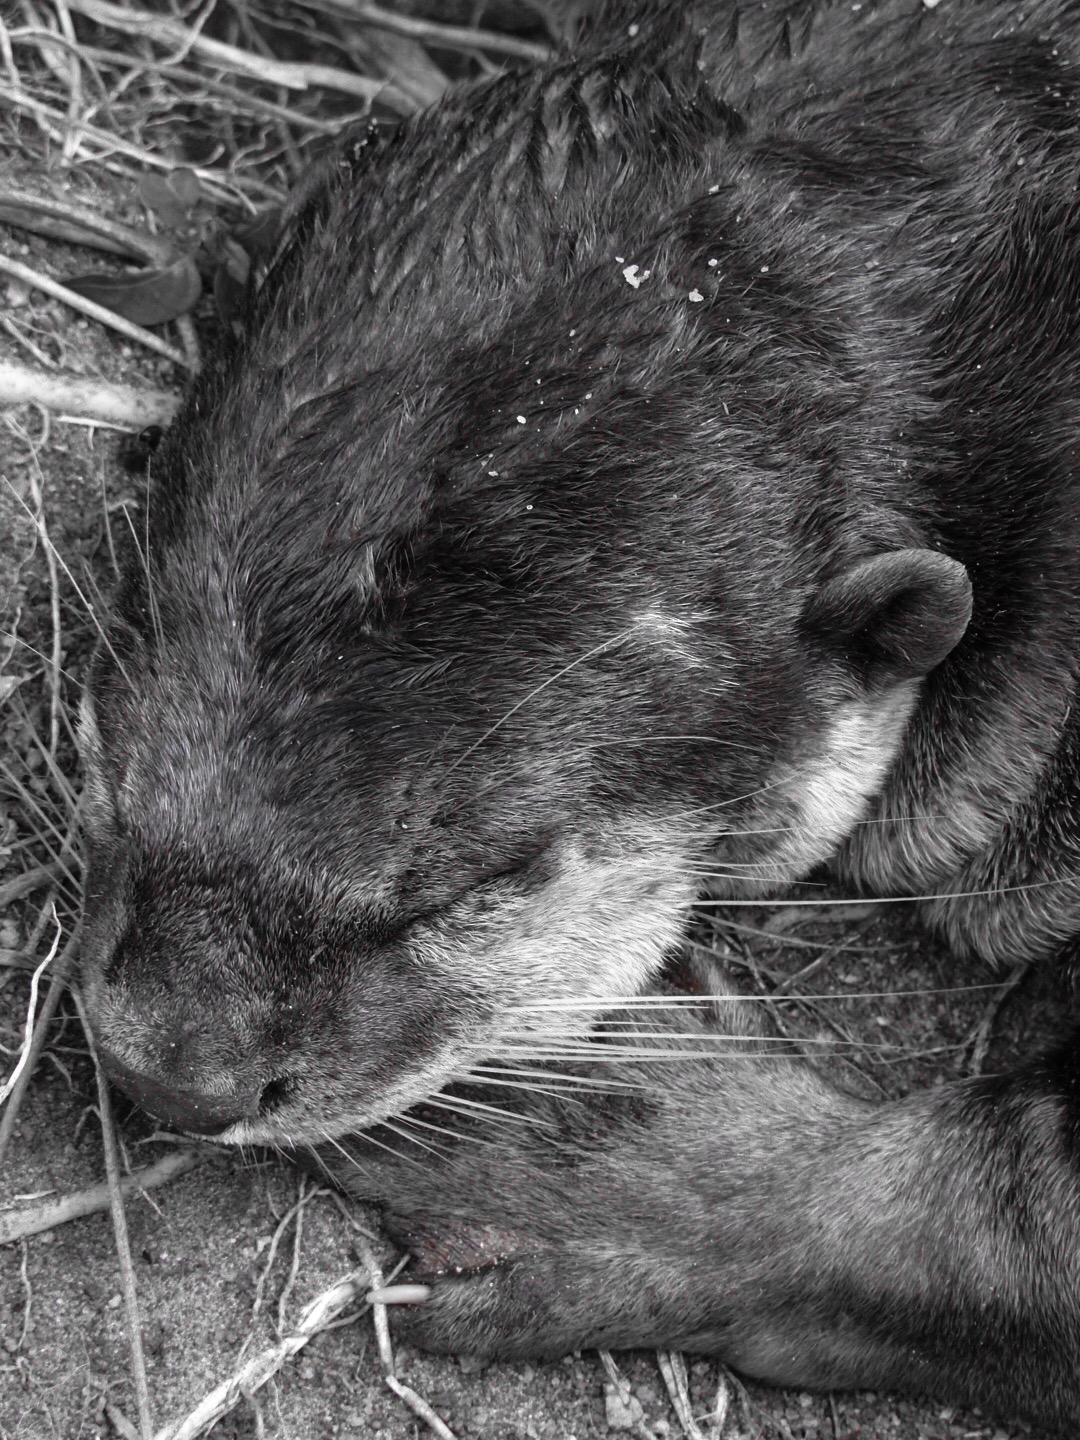 It's Otter nap time